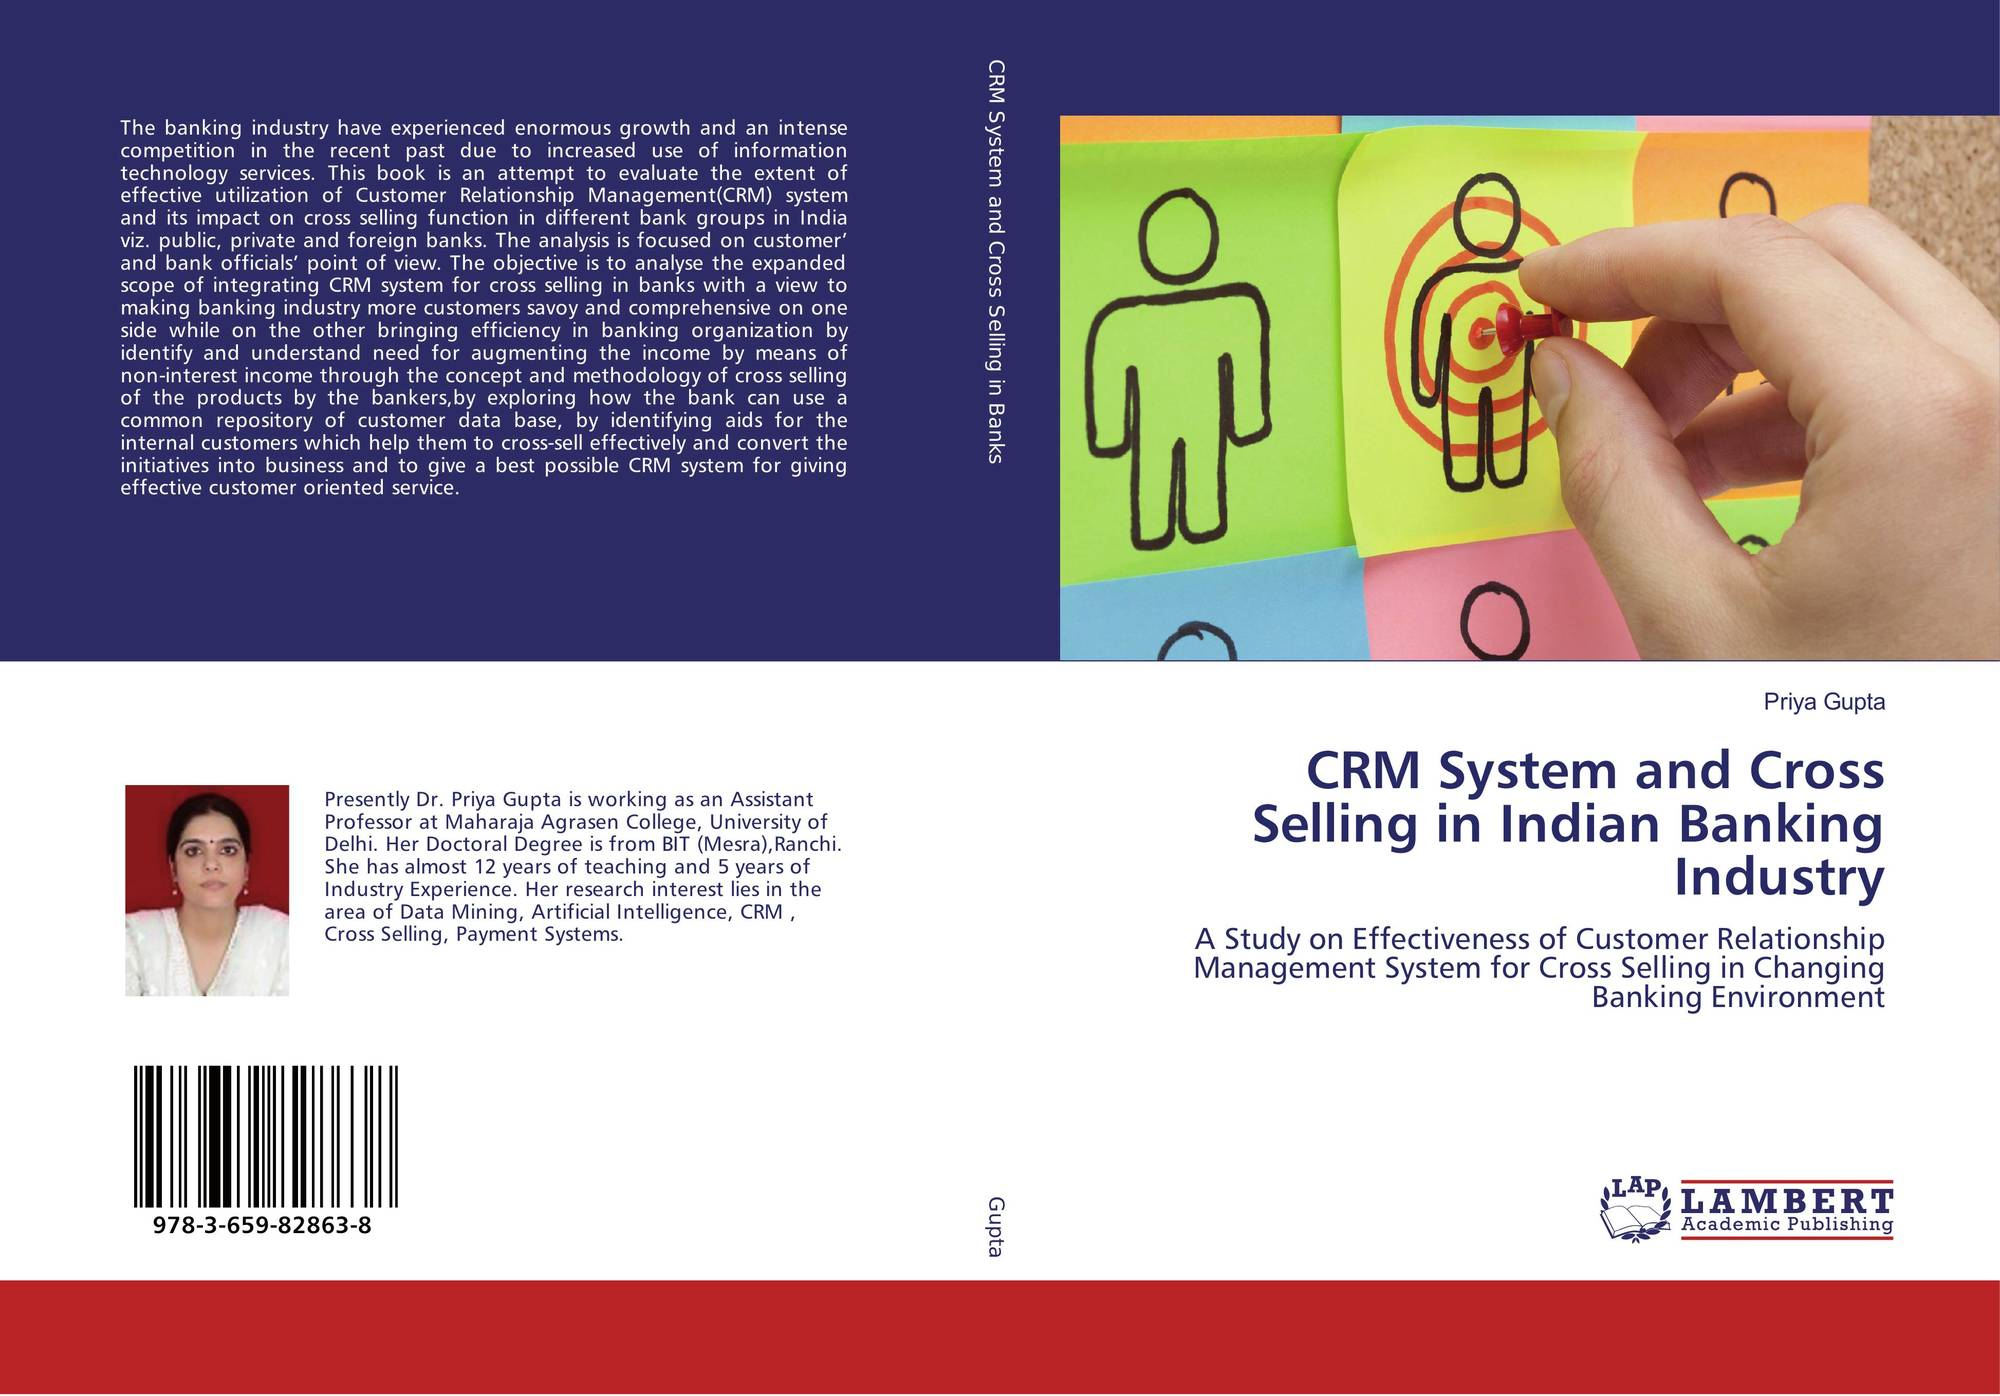 crm banking sector Banking crm provides financial institutions with a holistic view of all banking relationships and customer information, and stores it in a single data warehouse where it can be studied later increased share-of-wallet – customer relationships are becoming even more important for banks as market conditions get harder.